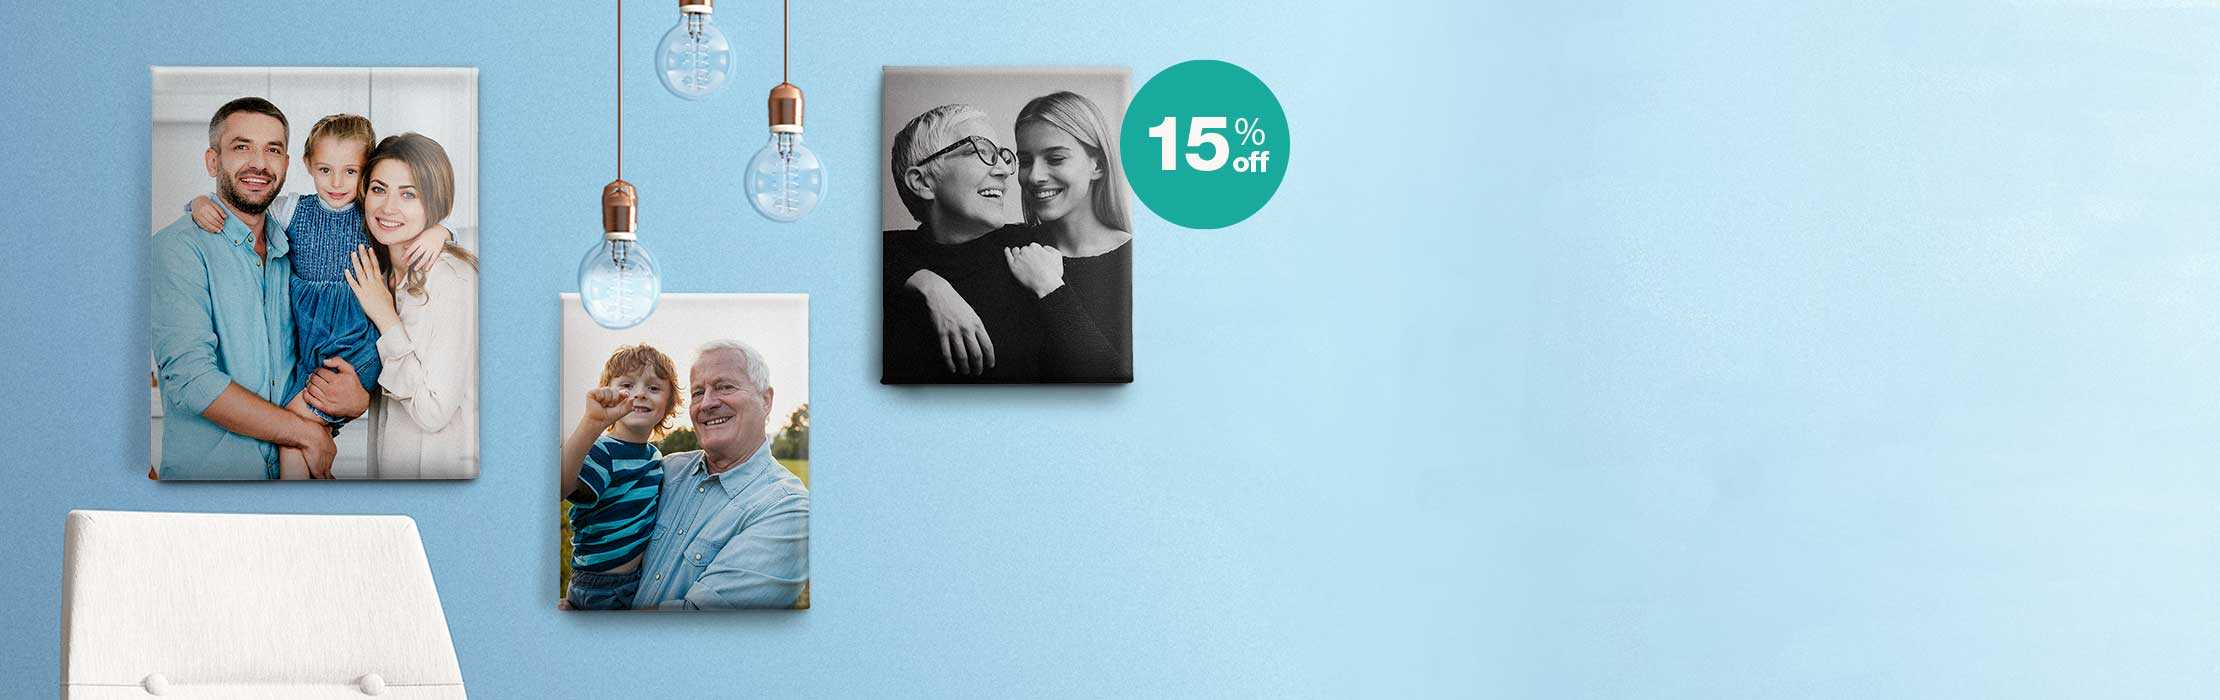 15% off sets. Voila! A home gallery wall